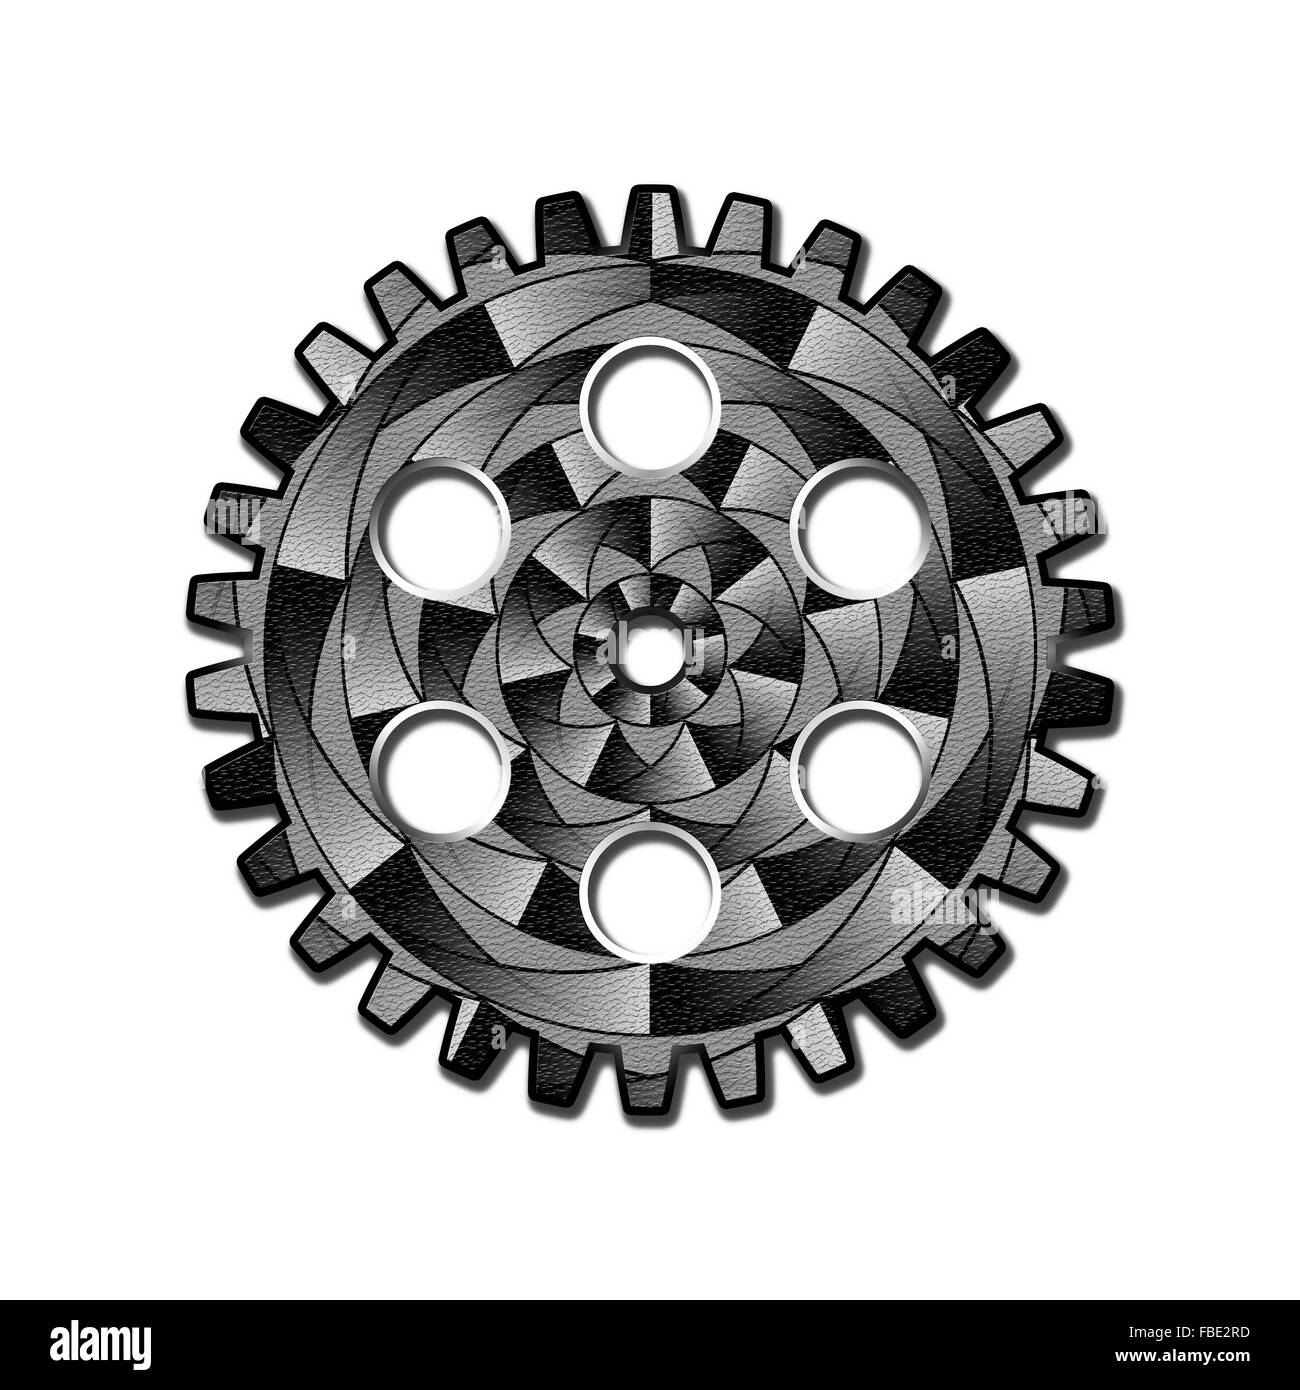 Gearwheel in black and white with geometric texture. Digital art. - Stock Image